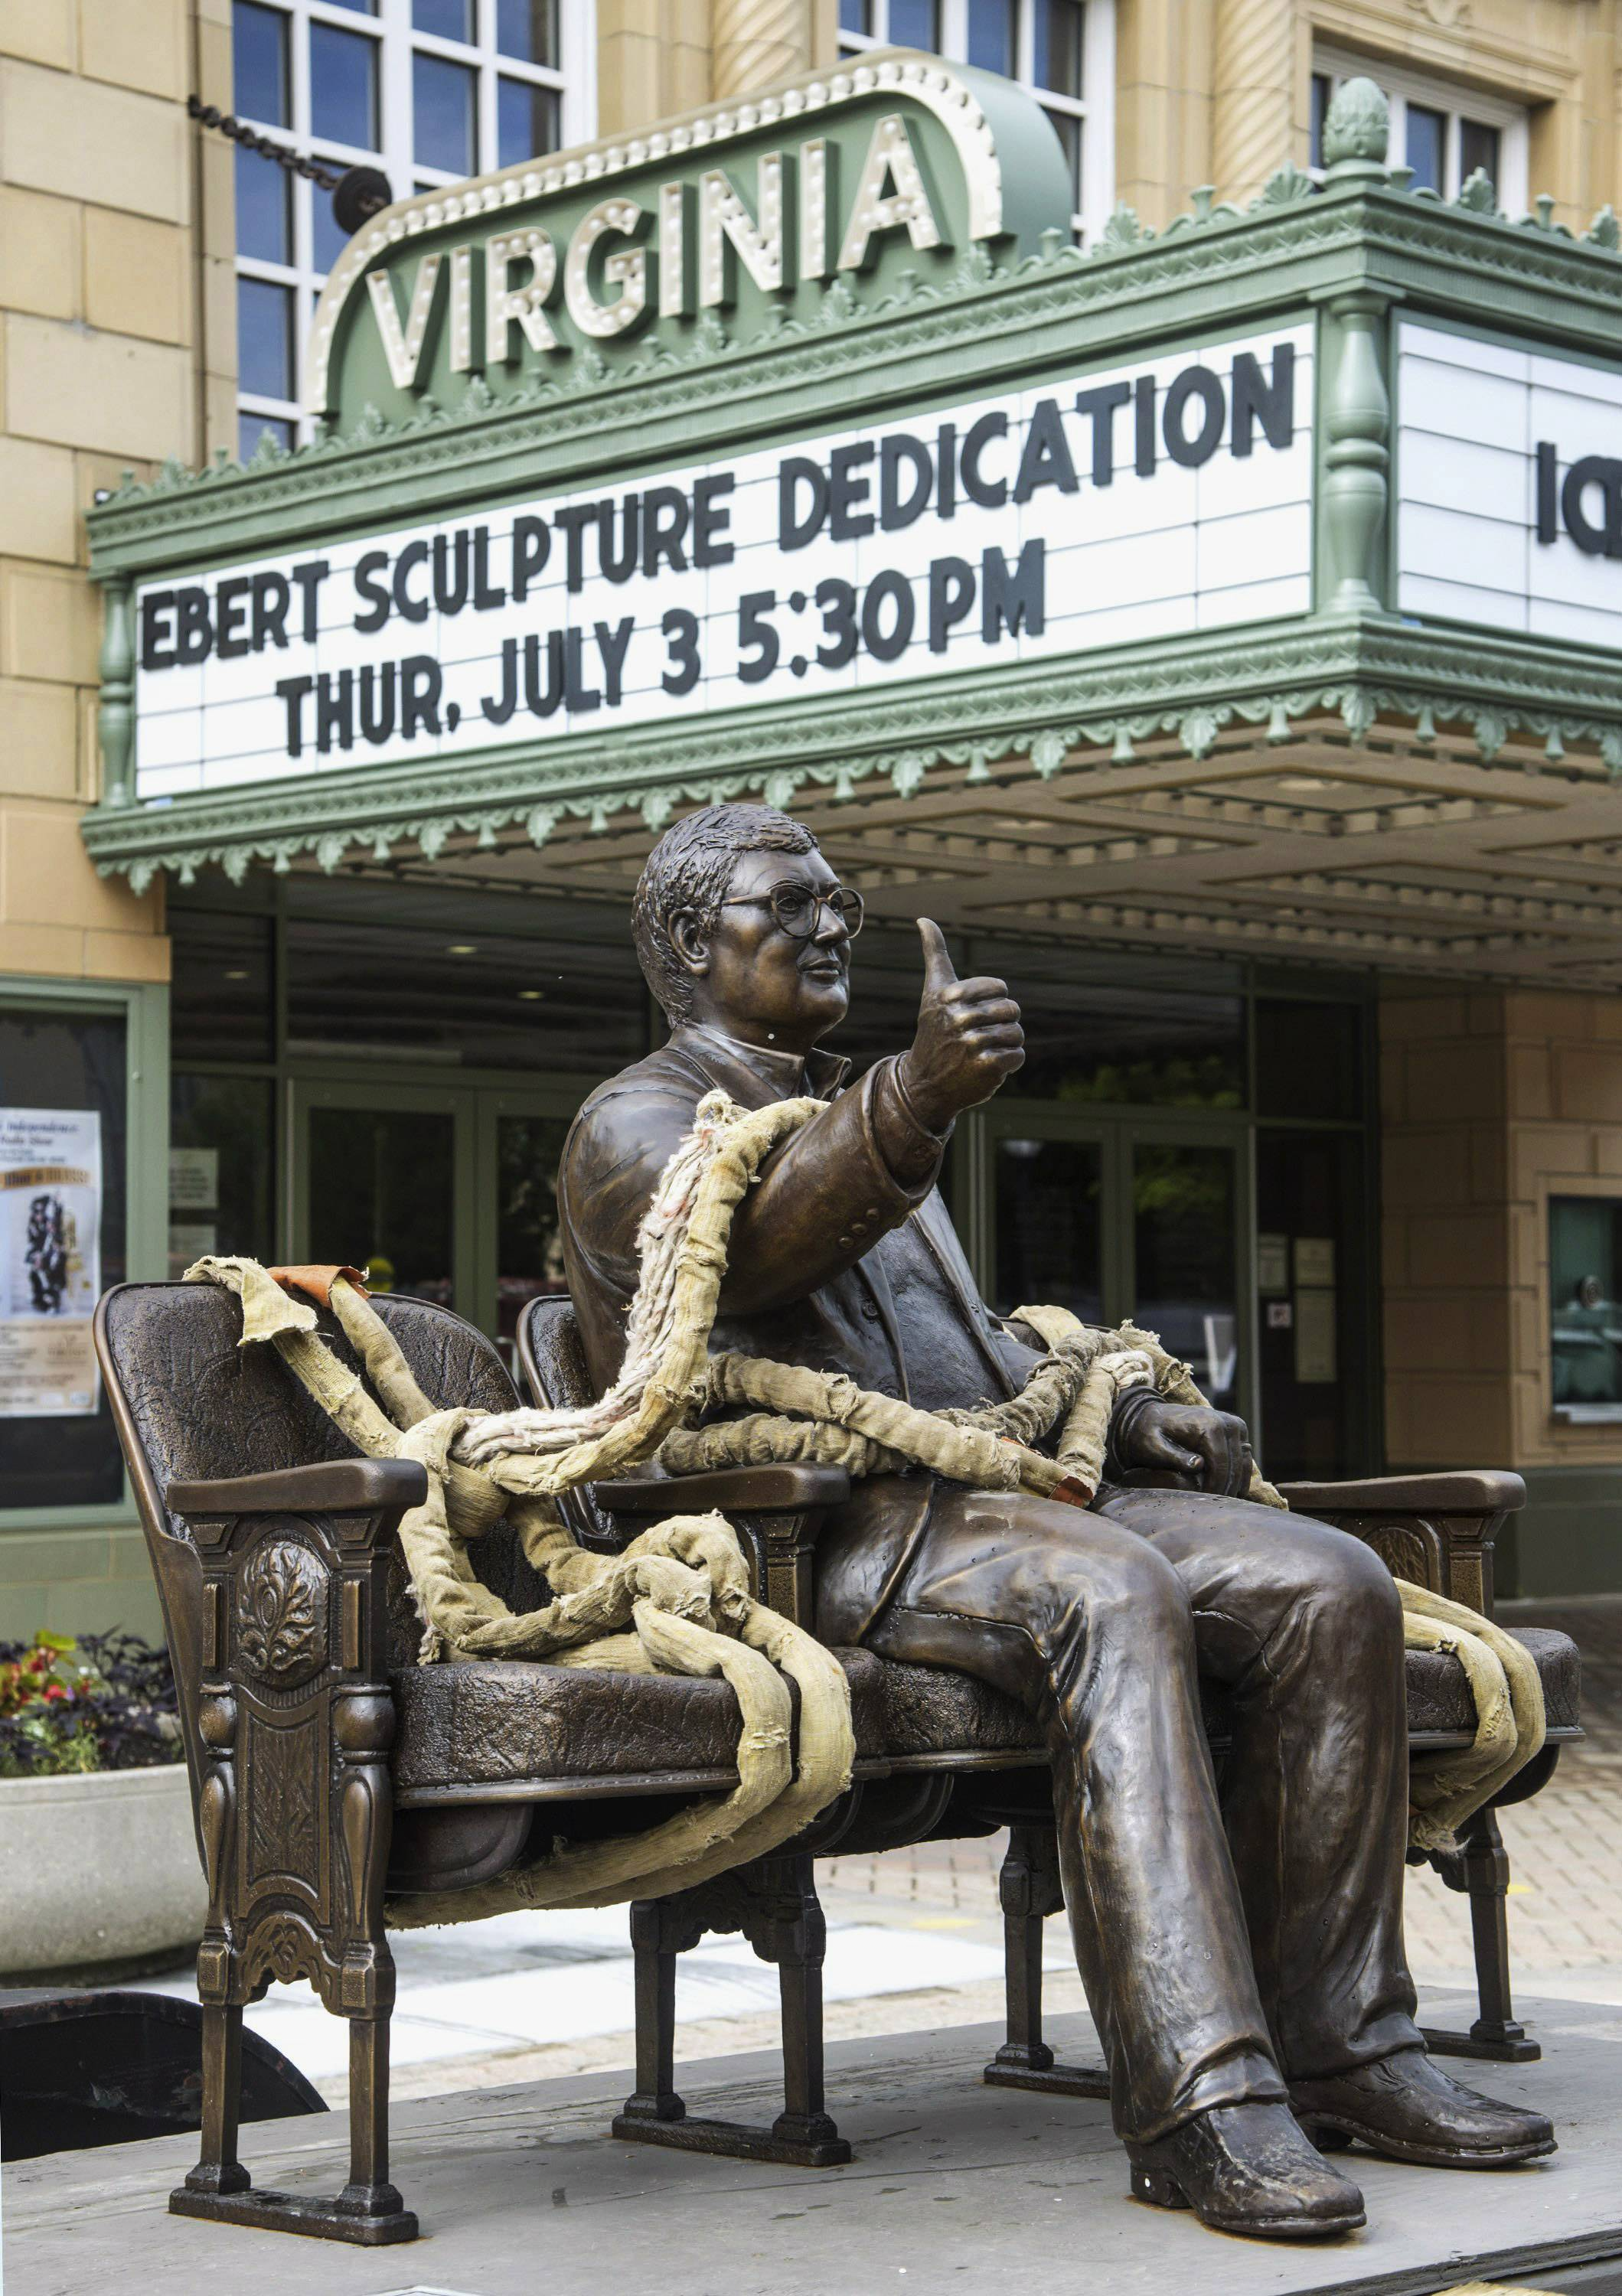 A statue of famed film critic Roger Ebert sits on a trailer awaiting installation Tuesday outside the Virginia Theatre in Champaign, Ill.